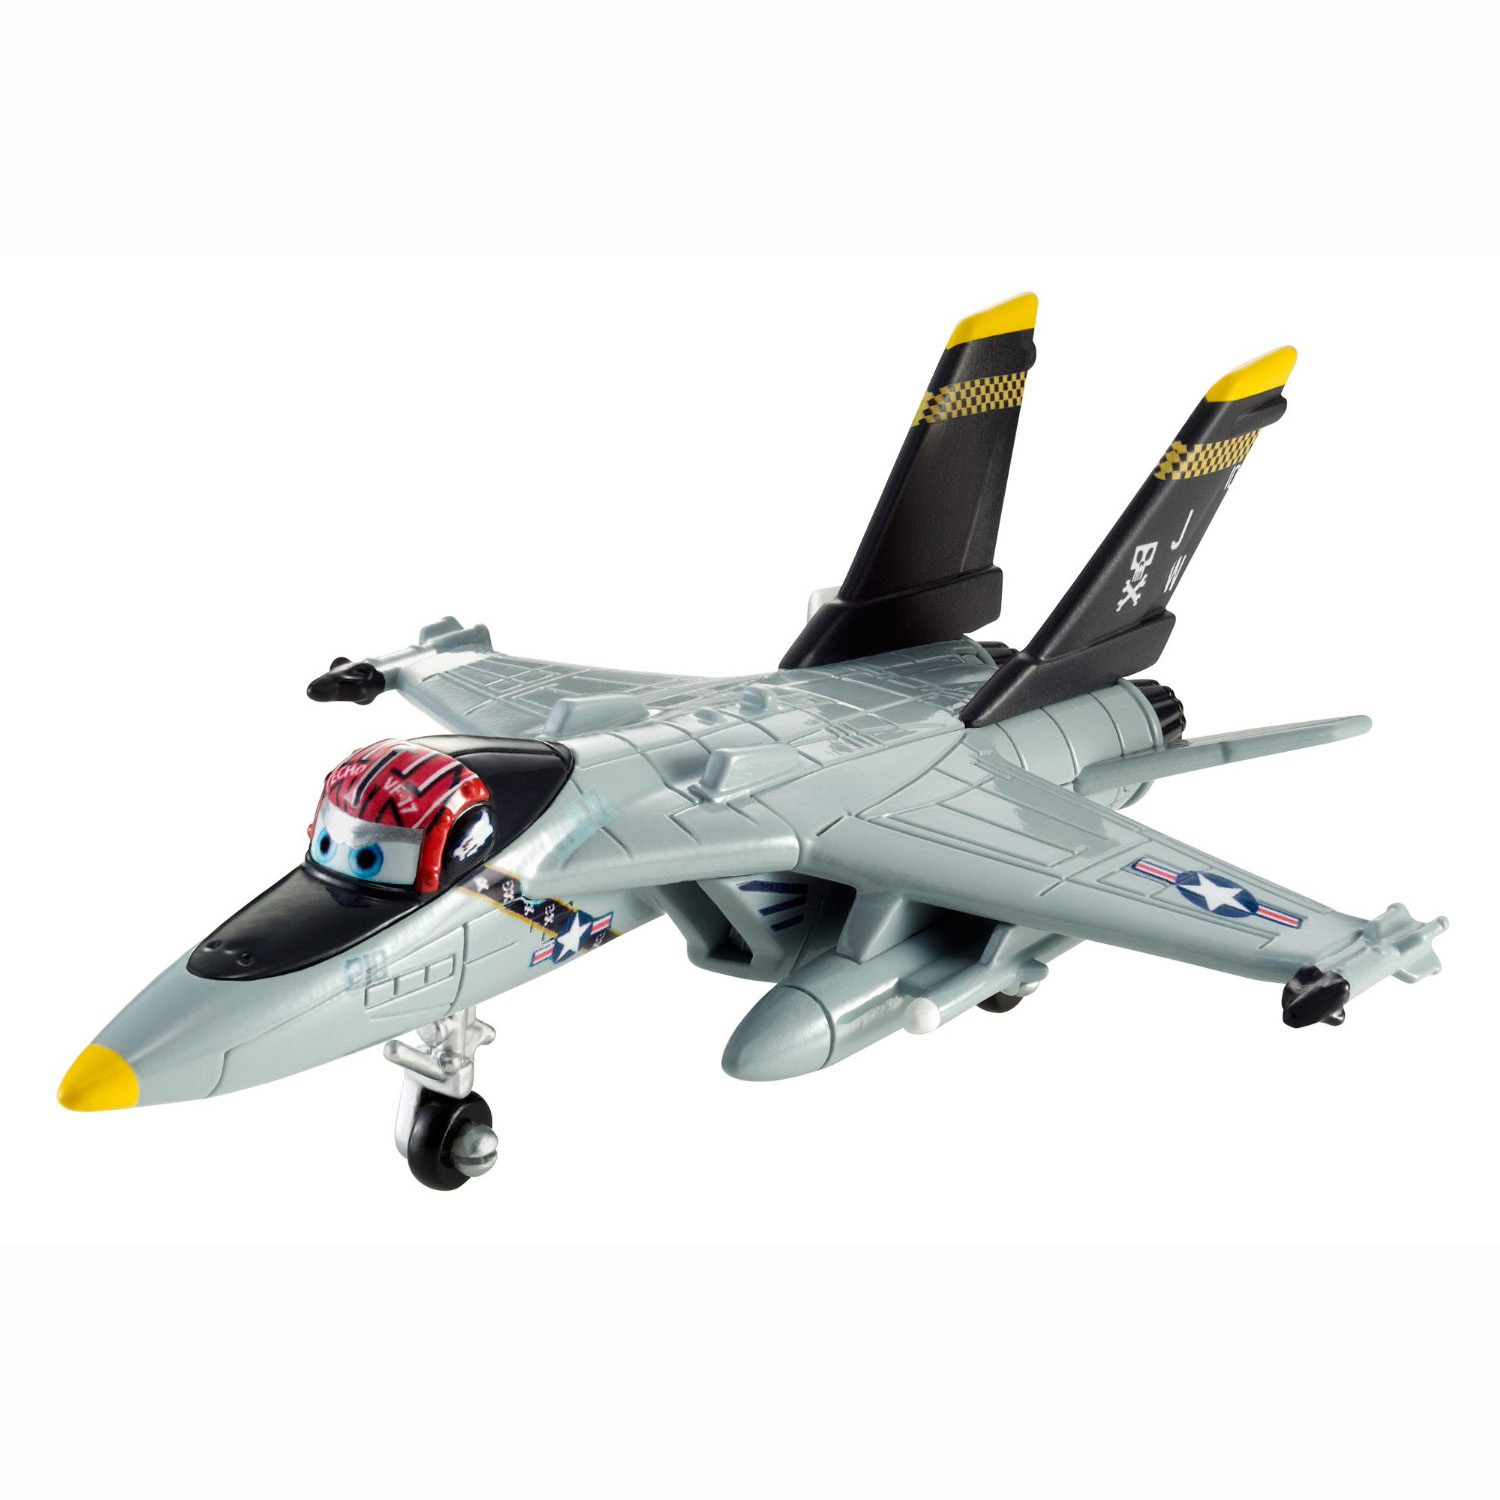 remote control jets for sale with Toys Planes 2015 on Large Scale RC Planes 11 as well Model Jet Engines as well 39814839 furthermore Giant Scale Rc Airplanes moreover One Off Ferrari 599xx Evo Sells For E1 4million At Auction.